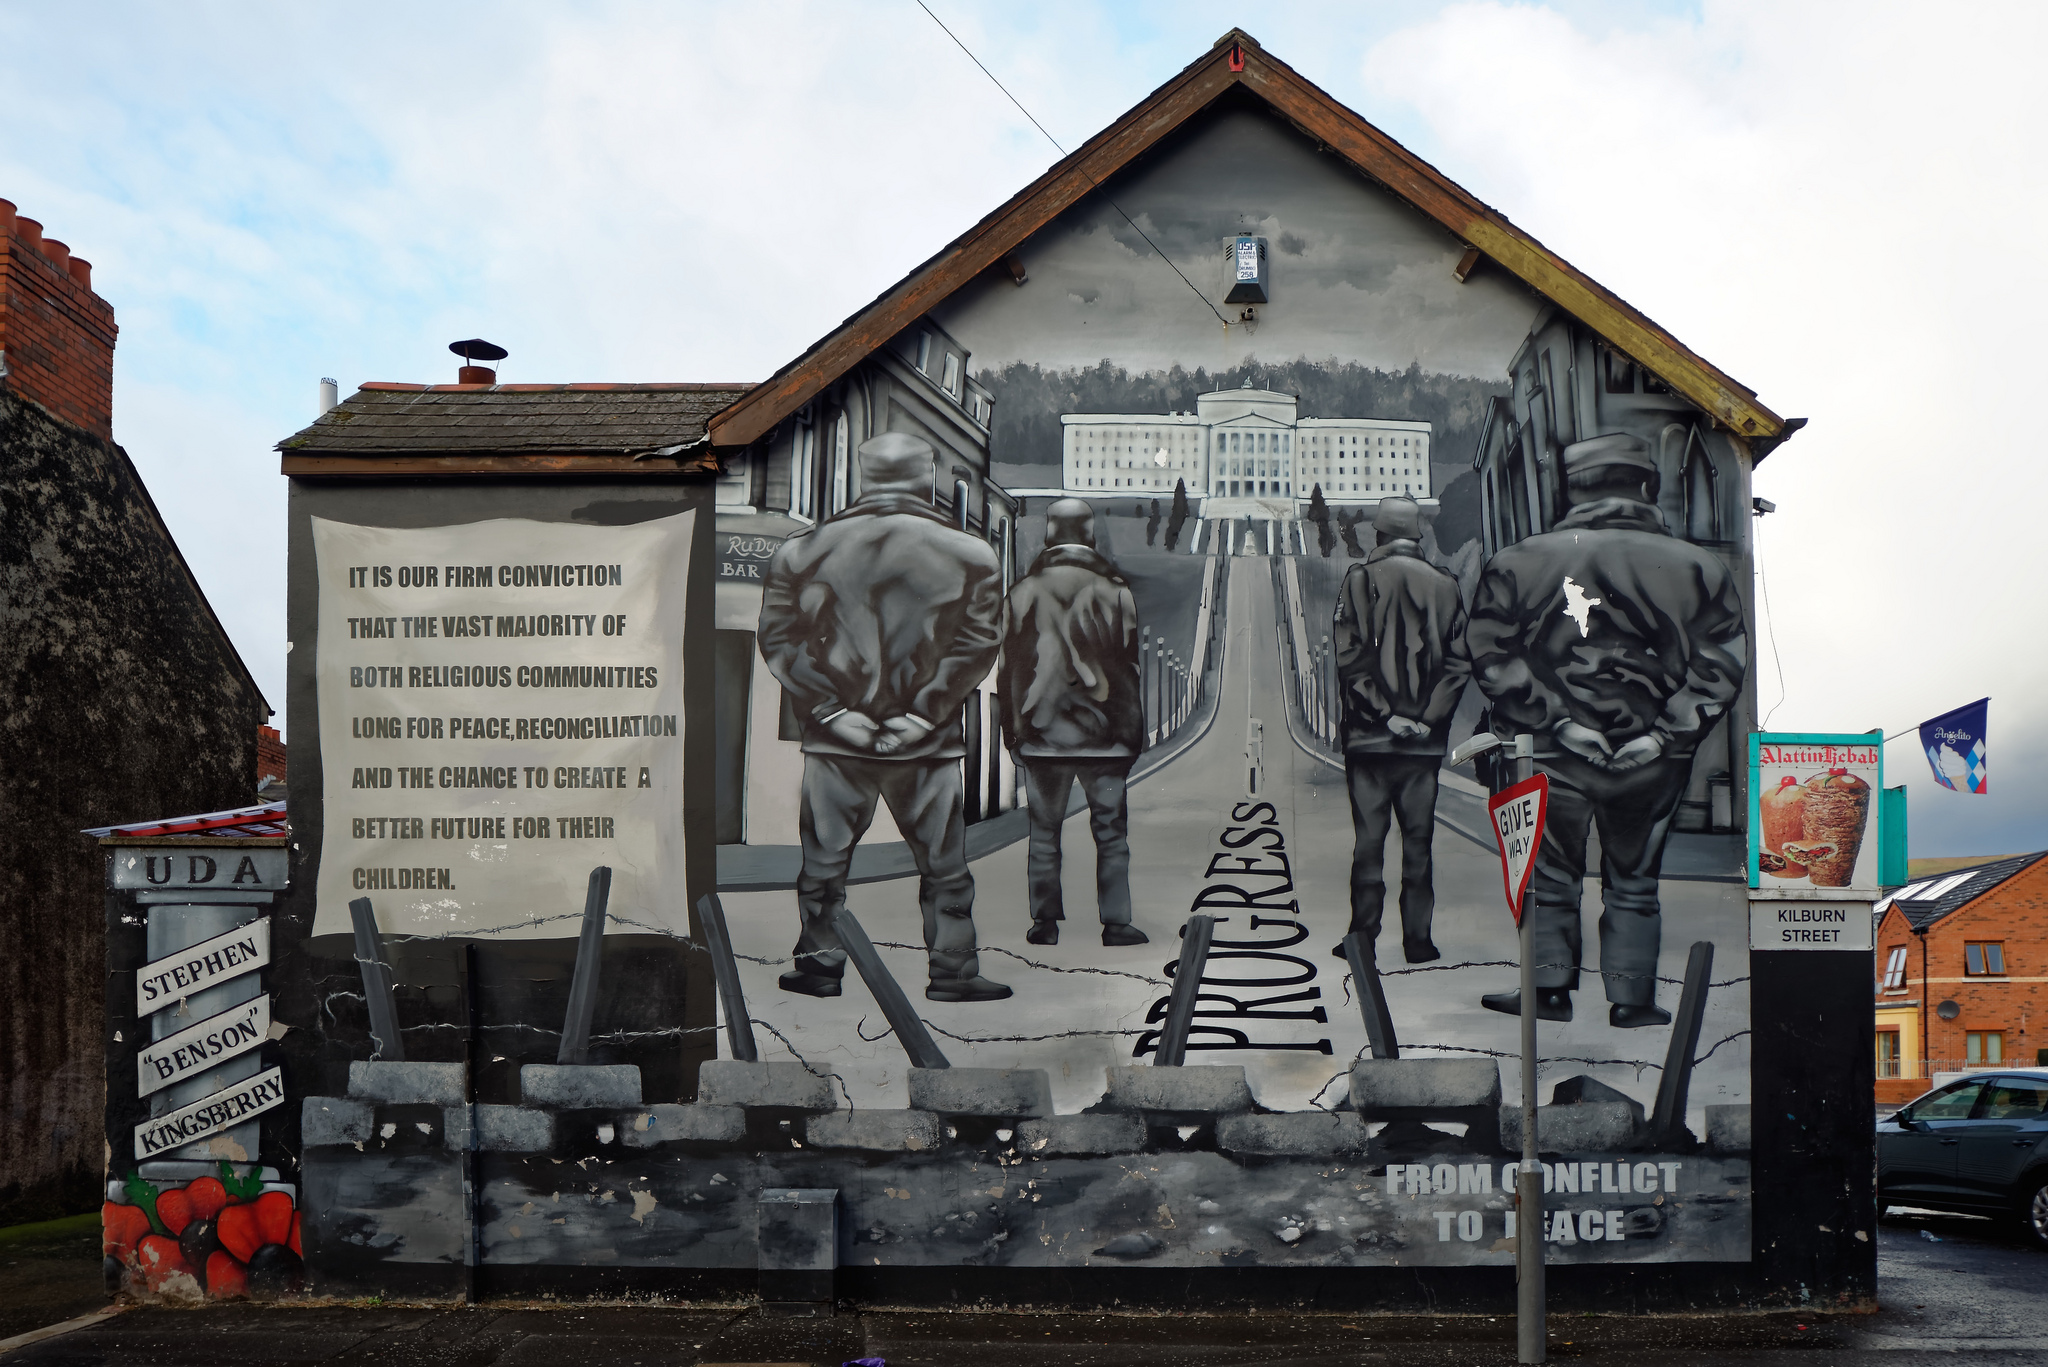 http://tehne.com/assets/i/upload/event/nothern-ireland-murals-2015-10.jpg